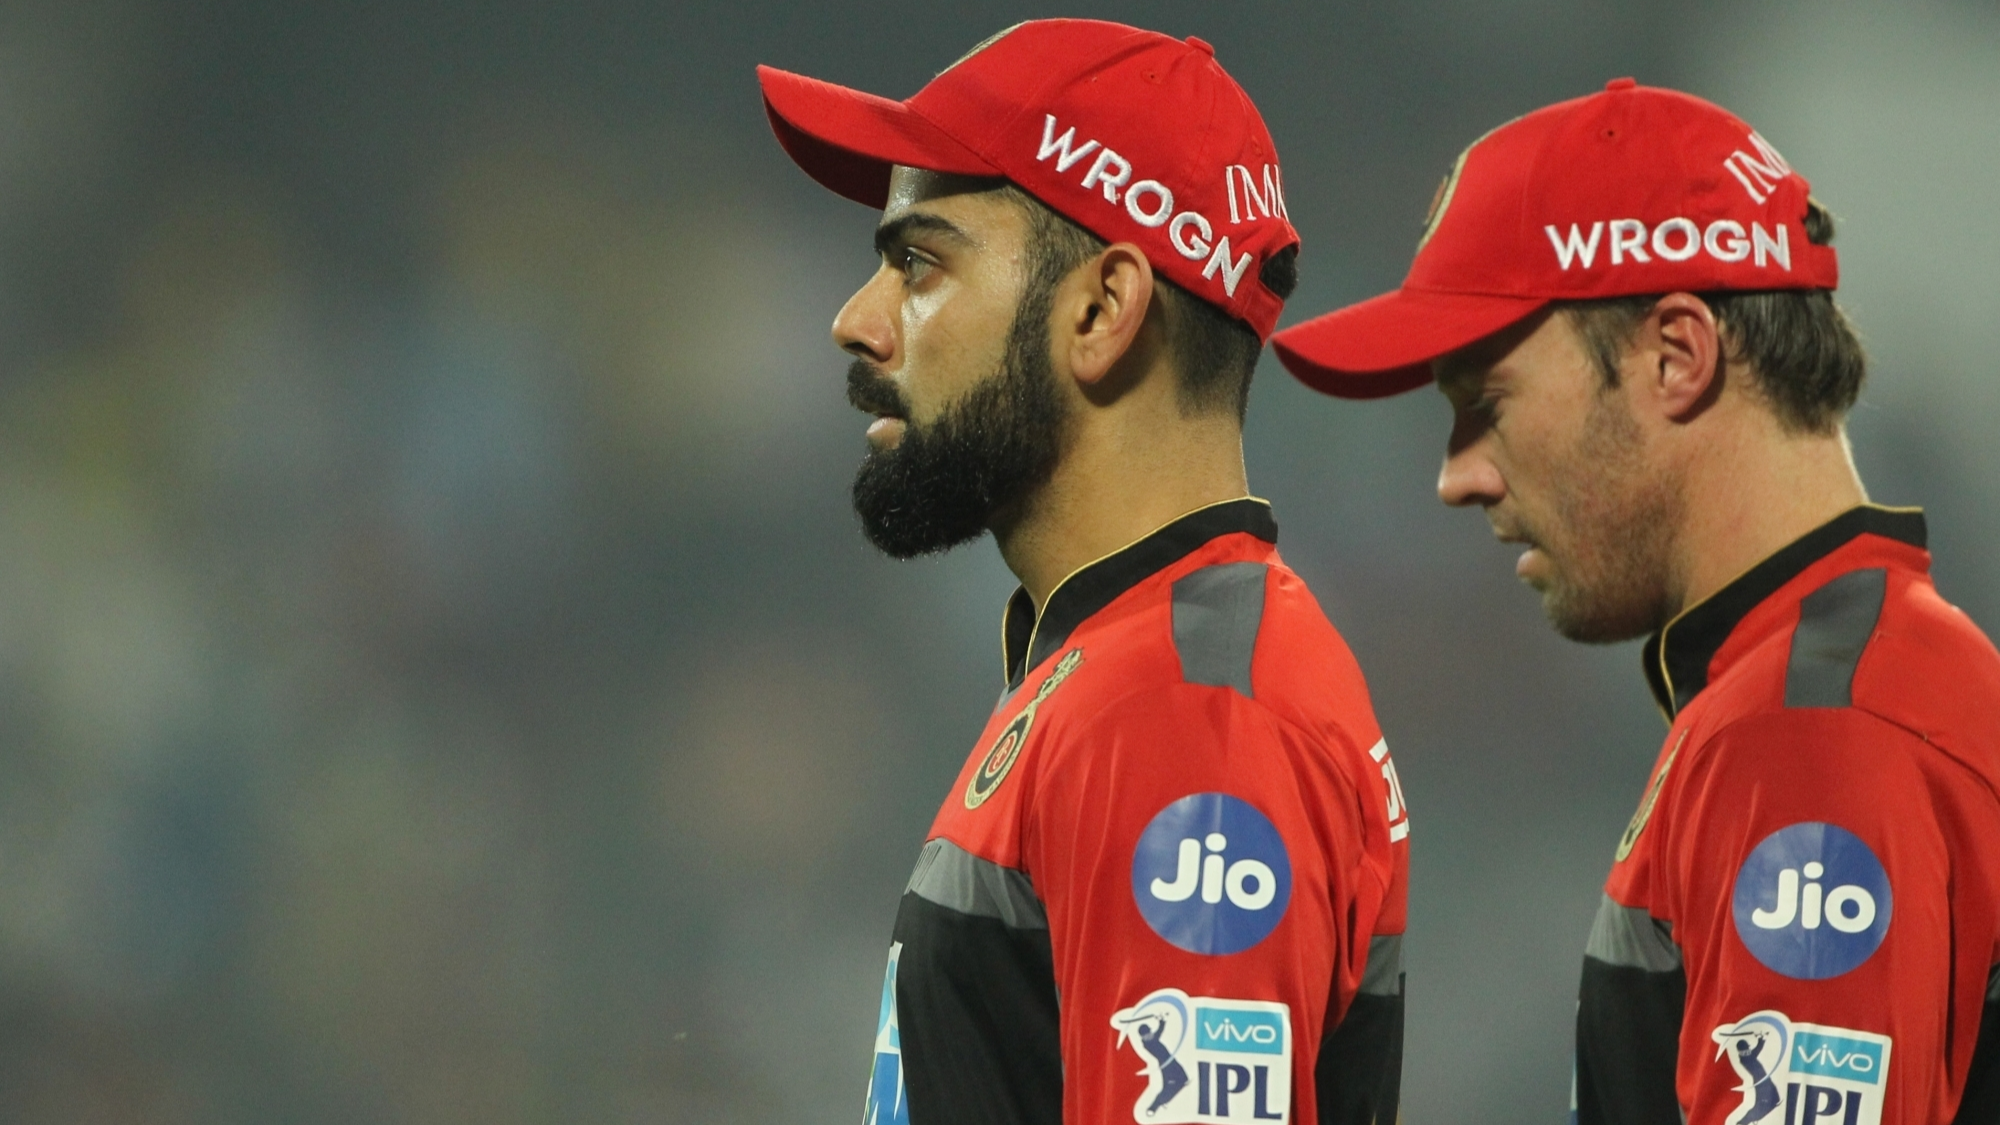 IPL 2018: Virat Kohli hints at different compositions in RCB squad next season